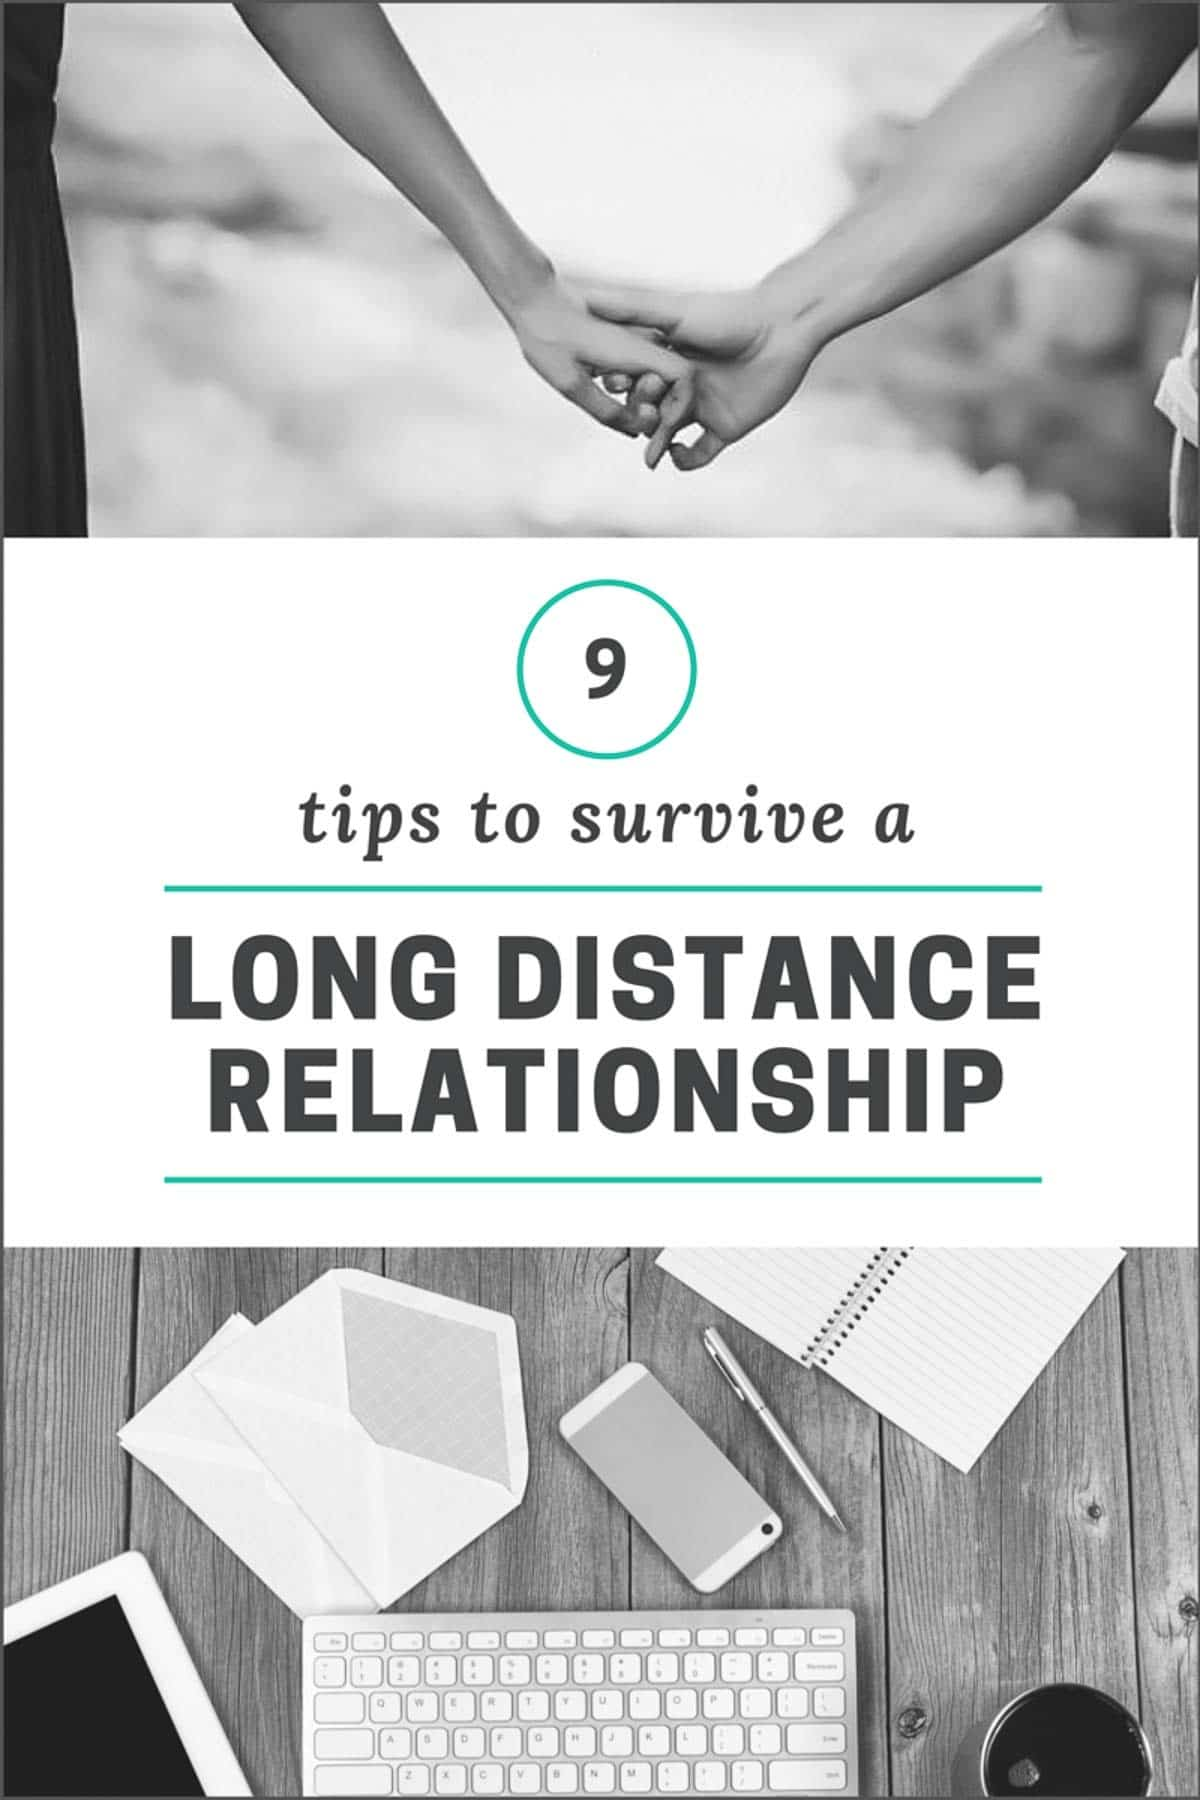 tips for long distance online dating 7 tips for making long-distance love last search for content, post, videos sign up dating advice dating tips dating issues relationships first dates being.